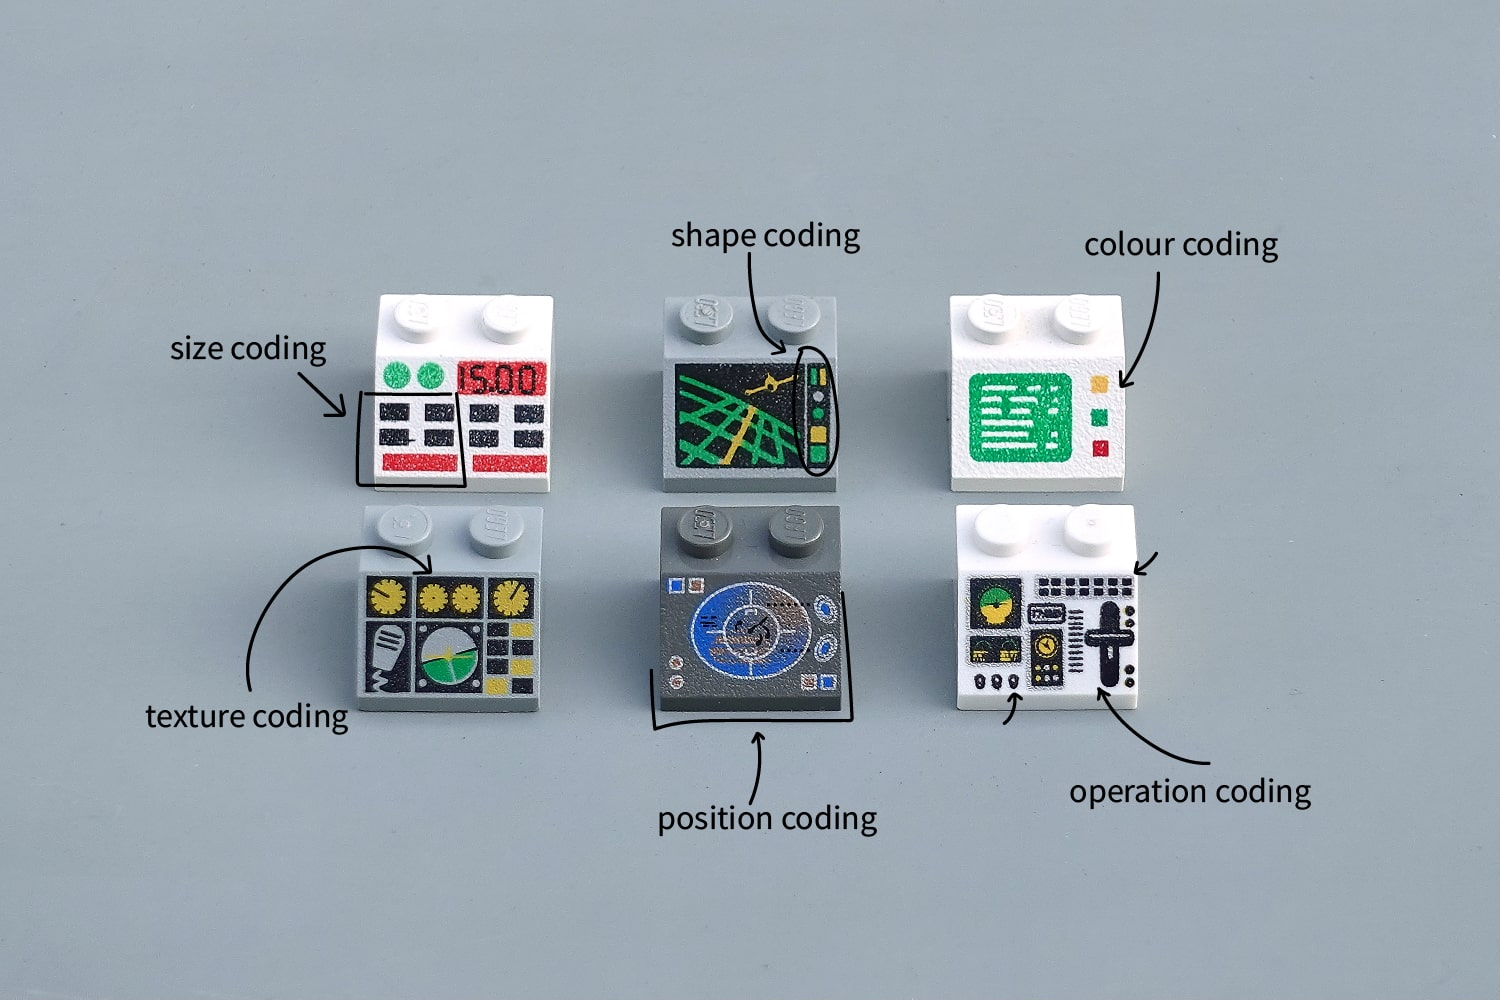 The six different codings in use in the LEGO interfaces: size, shape, colour, texture, position, operation